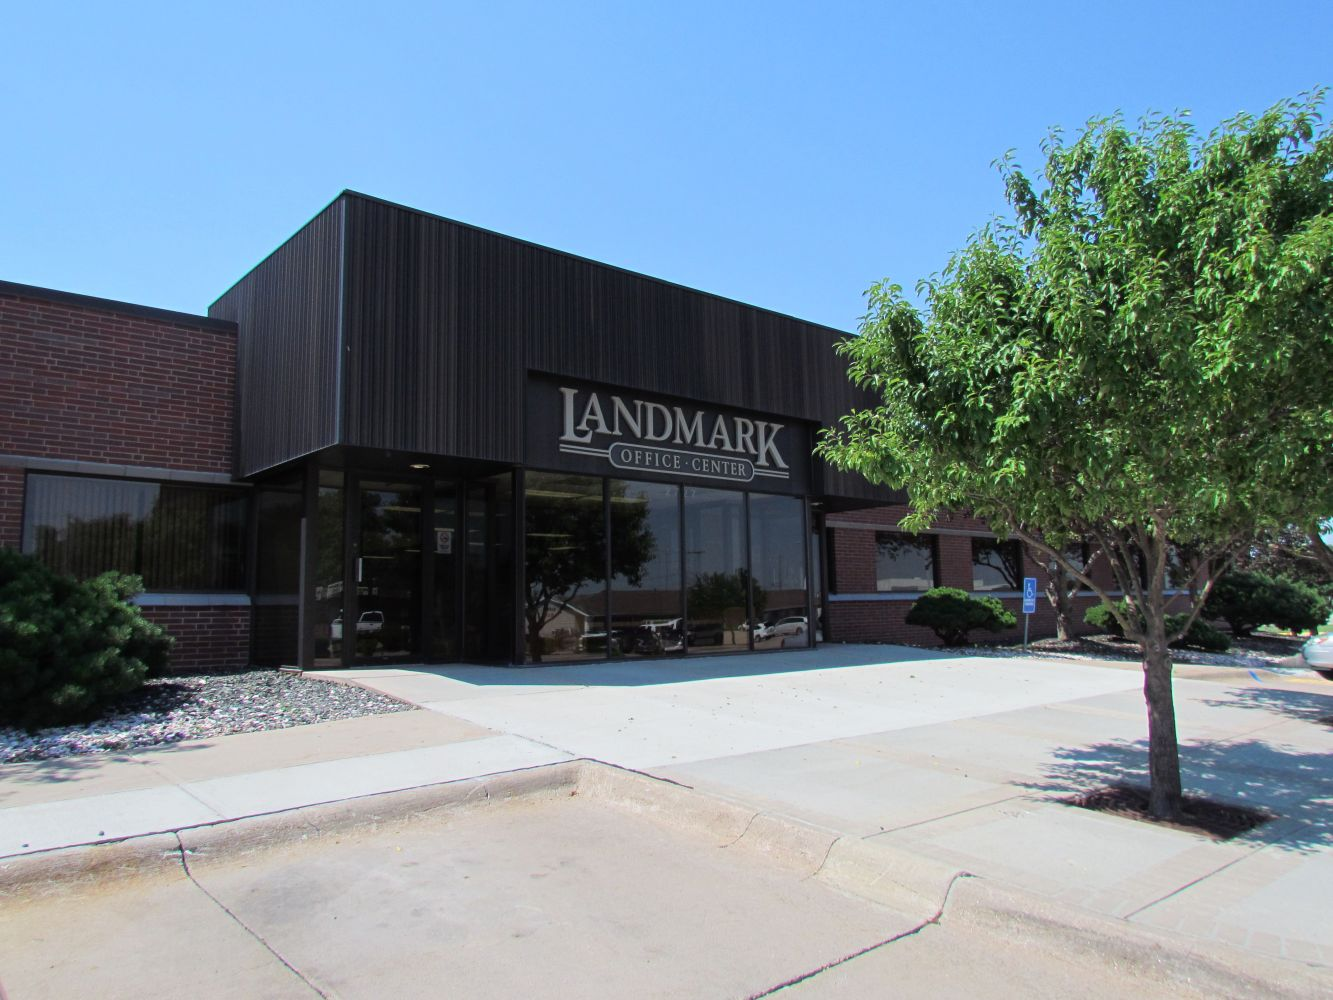 The Landmark Center in Hastings, NE